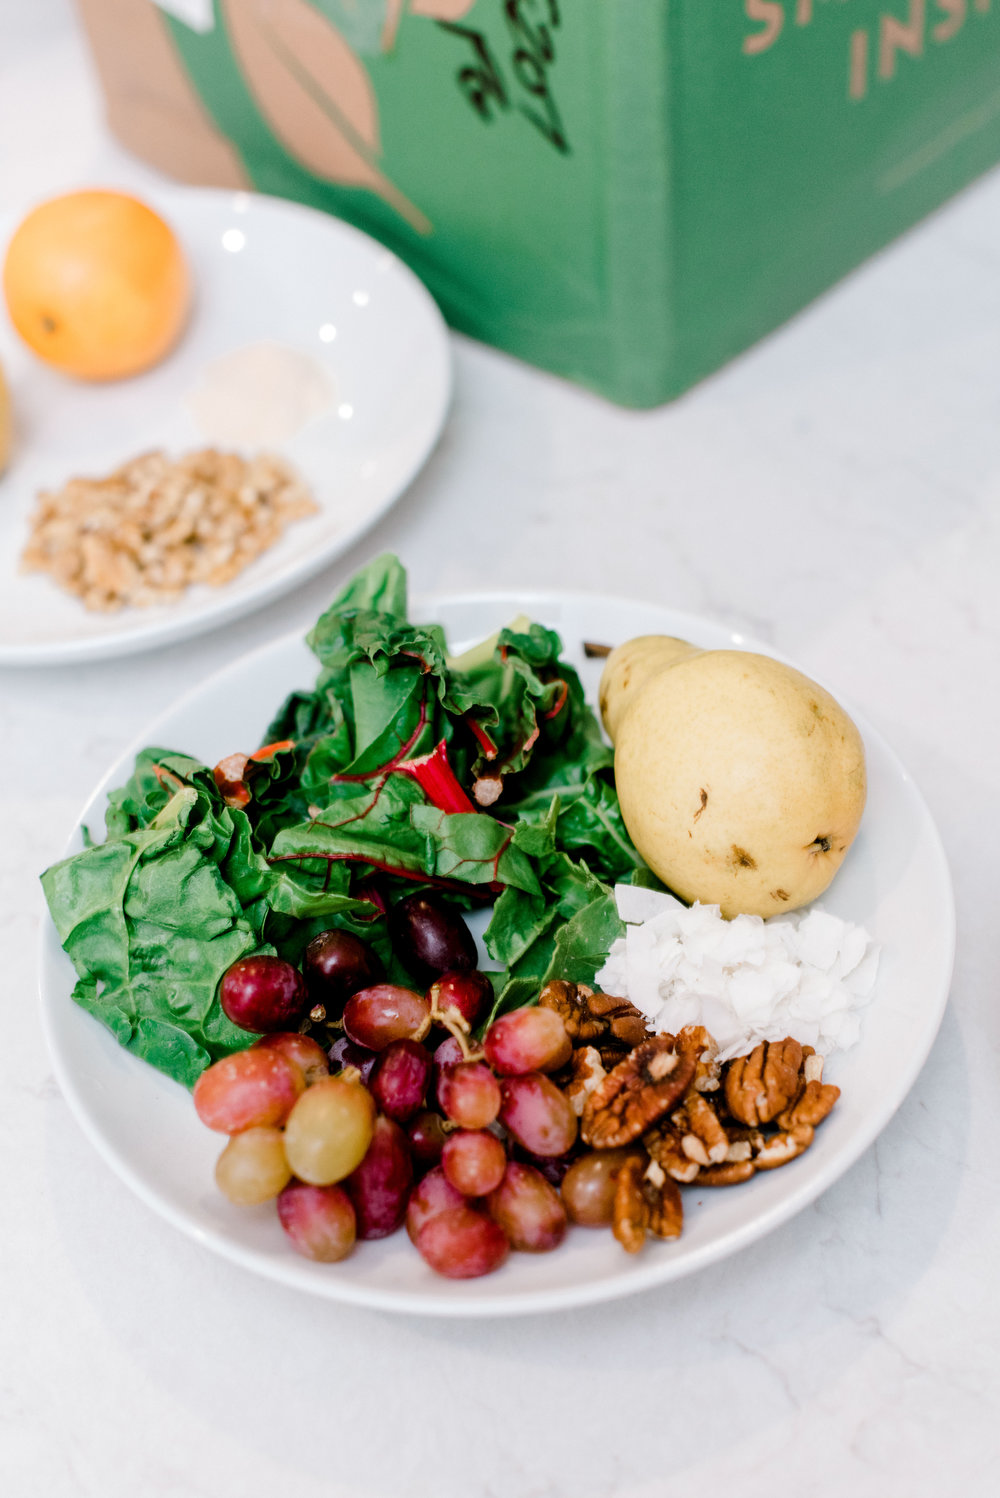 Coconut Pecan - 1 1/2 oz organic Swiss chard1 organic pear, chopped4 oz grapes3 tbsp organic pecans2 tbsp organic coconut flakes1 cup water, 1 cup ice